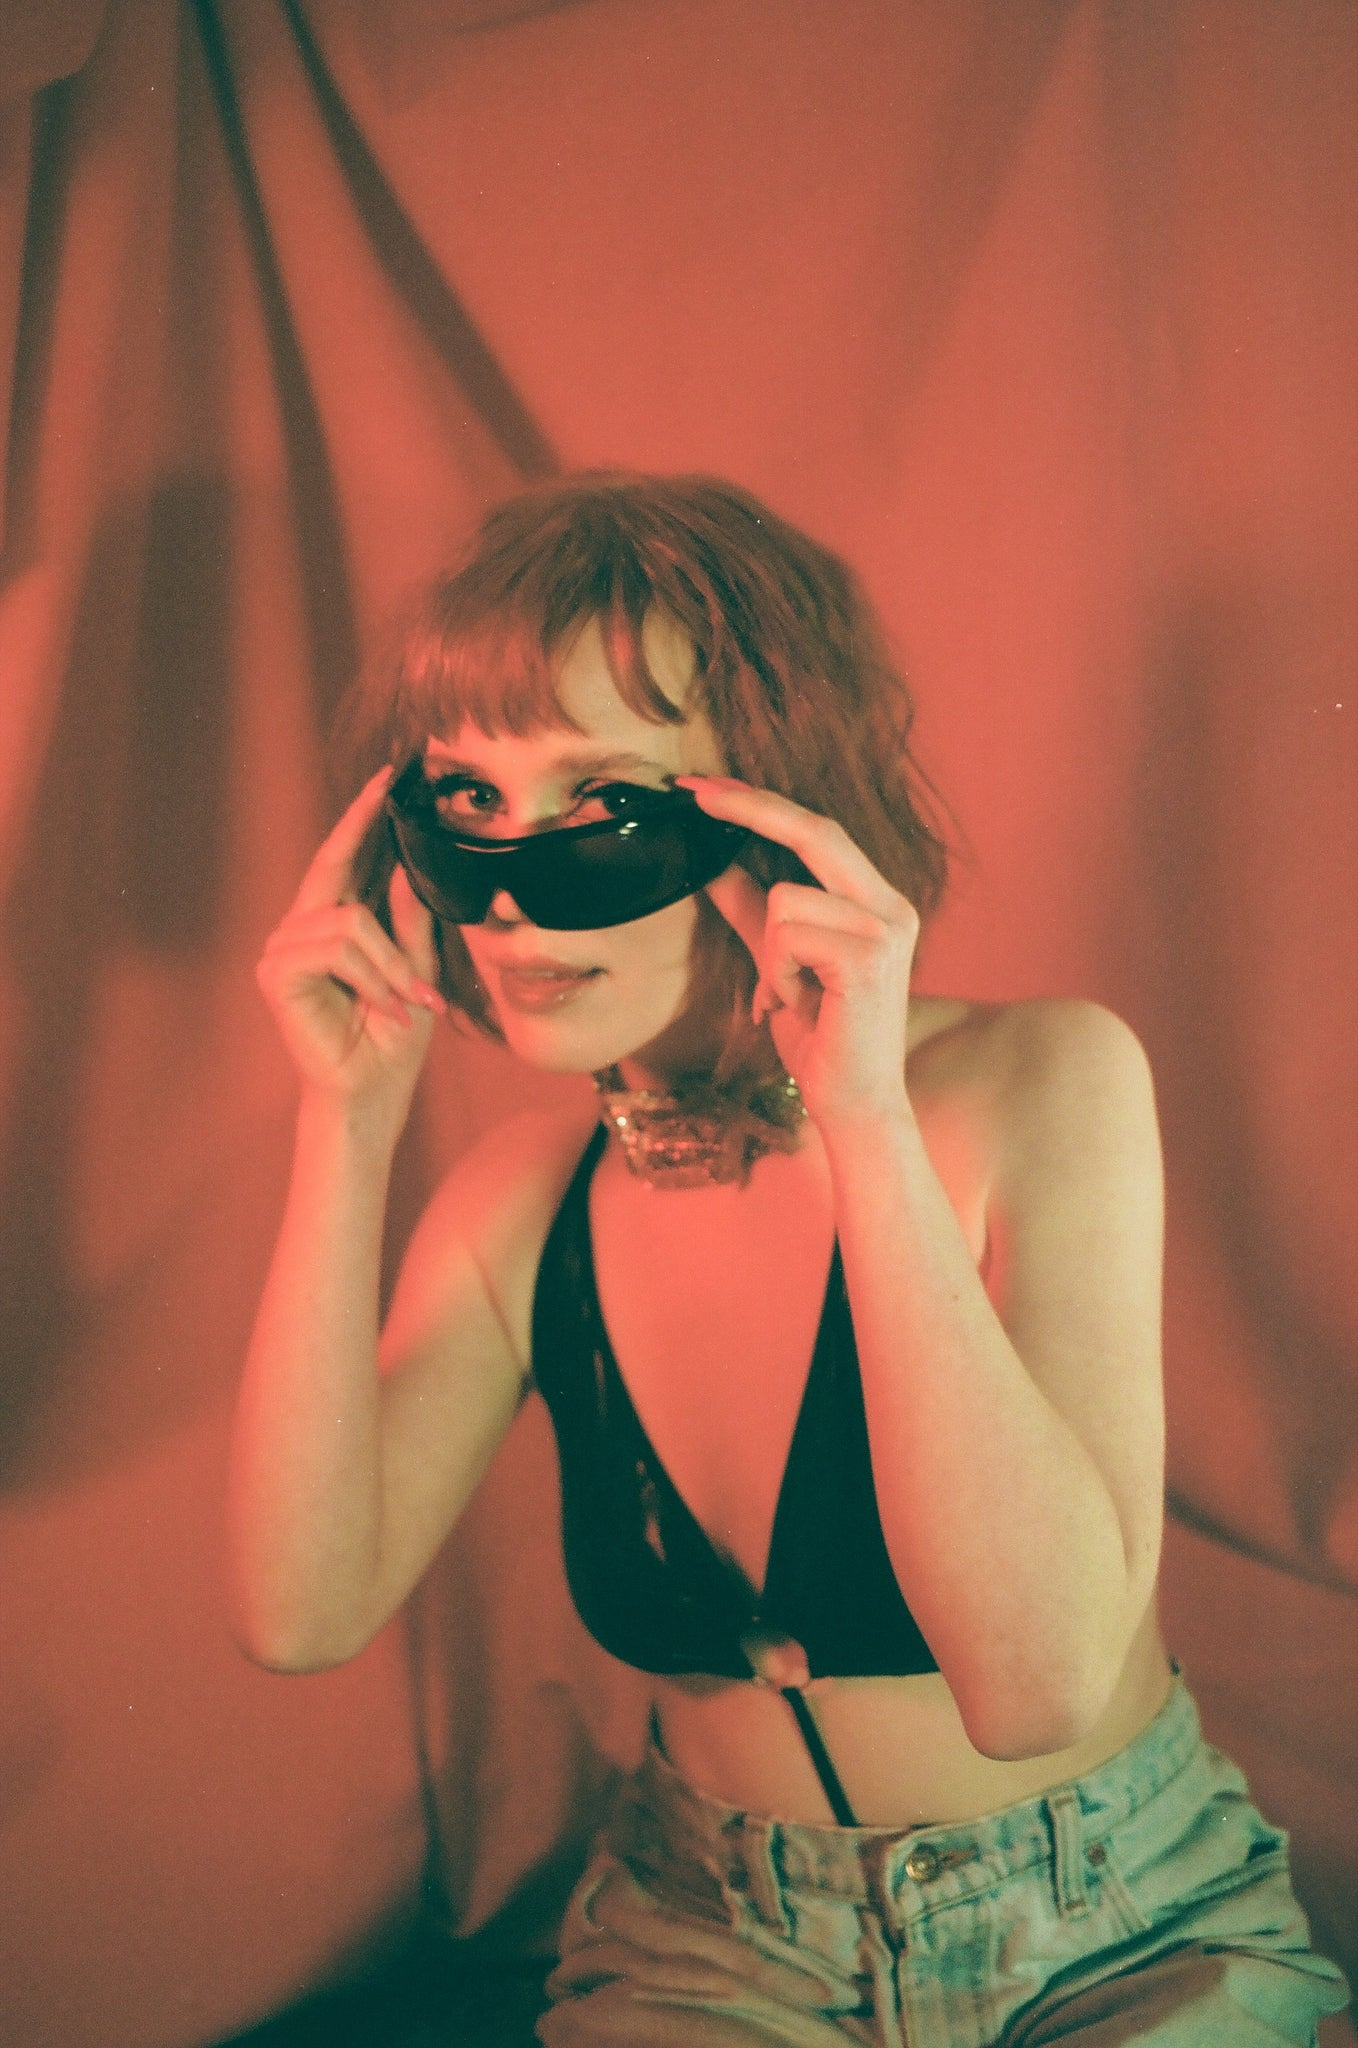 Montreal musician Madelline trying on sunglasses in a red lighting with a blacn bralette and mom jeans